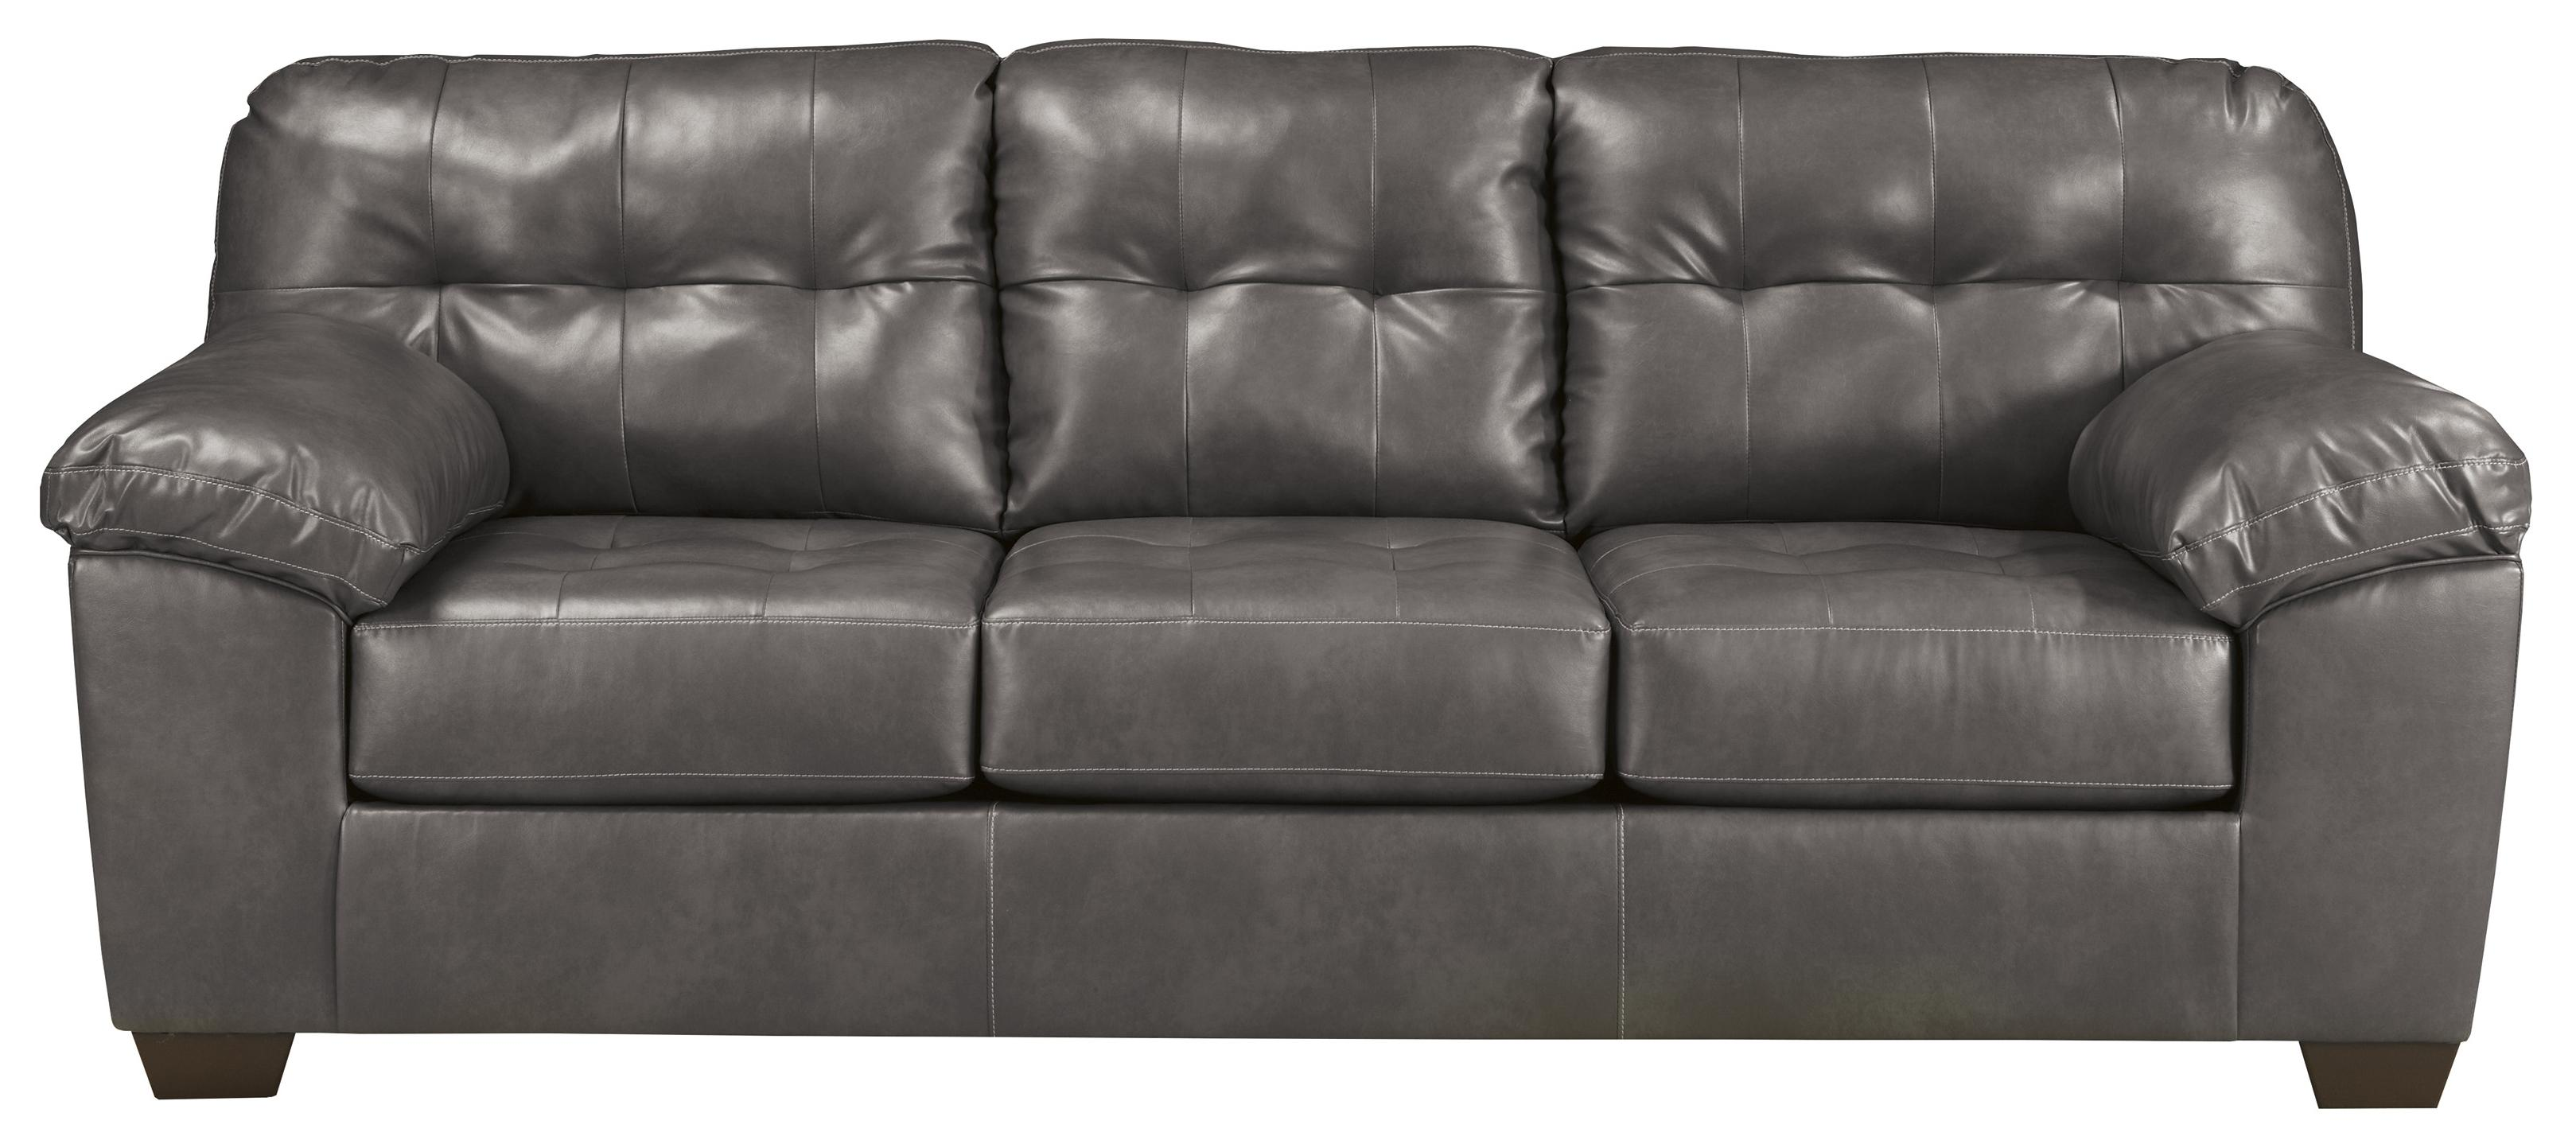 Alliston DuraBlend® - Gray Queen Sofa Sleeper by Signature Design by Ashley at Standard Furniture